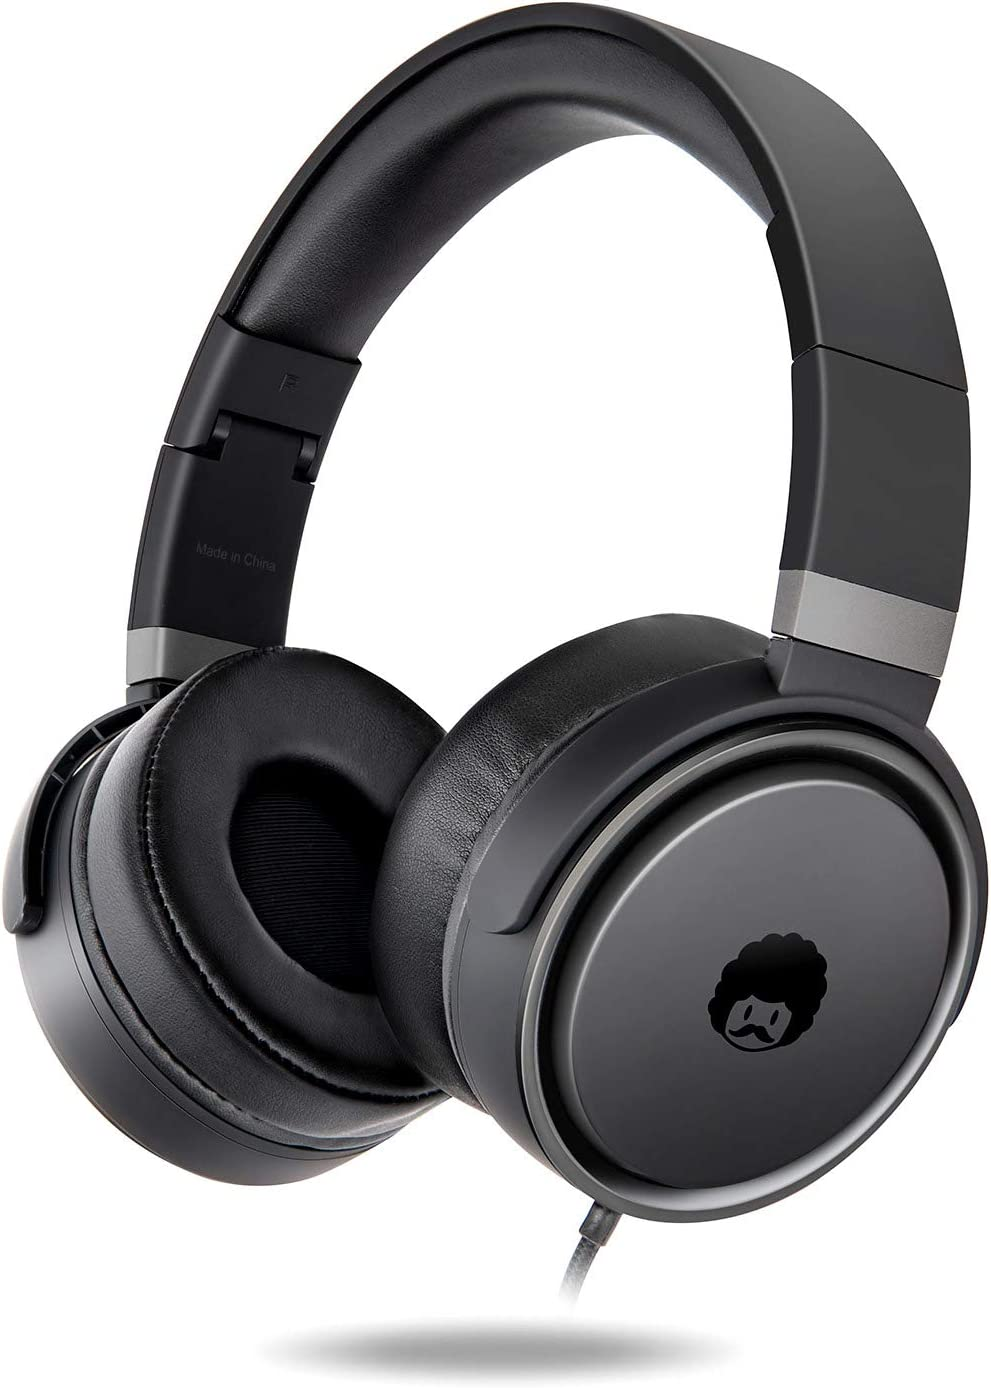 ROCKPAPA Circle ONE Wired Headphones with Microphone and Volume Control Foldable Lightweight Headset for Cellphones Tablets Smartphones Laptop Computer PC Mp3/4 CD DVD Black/Grey